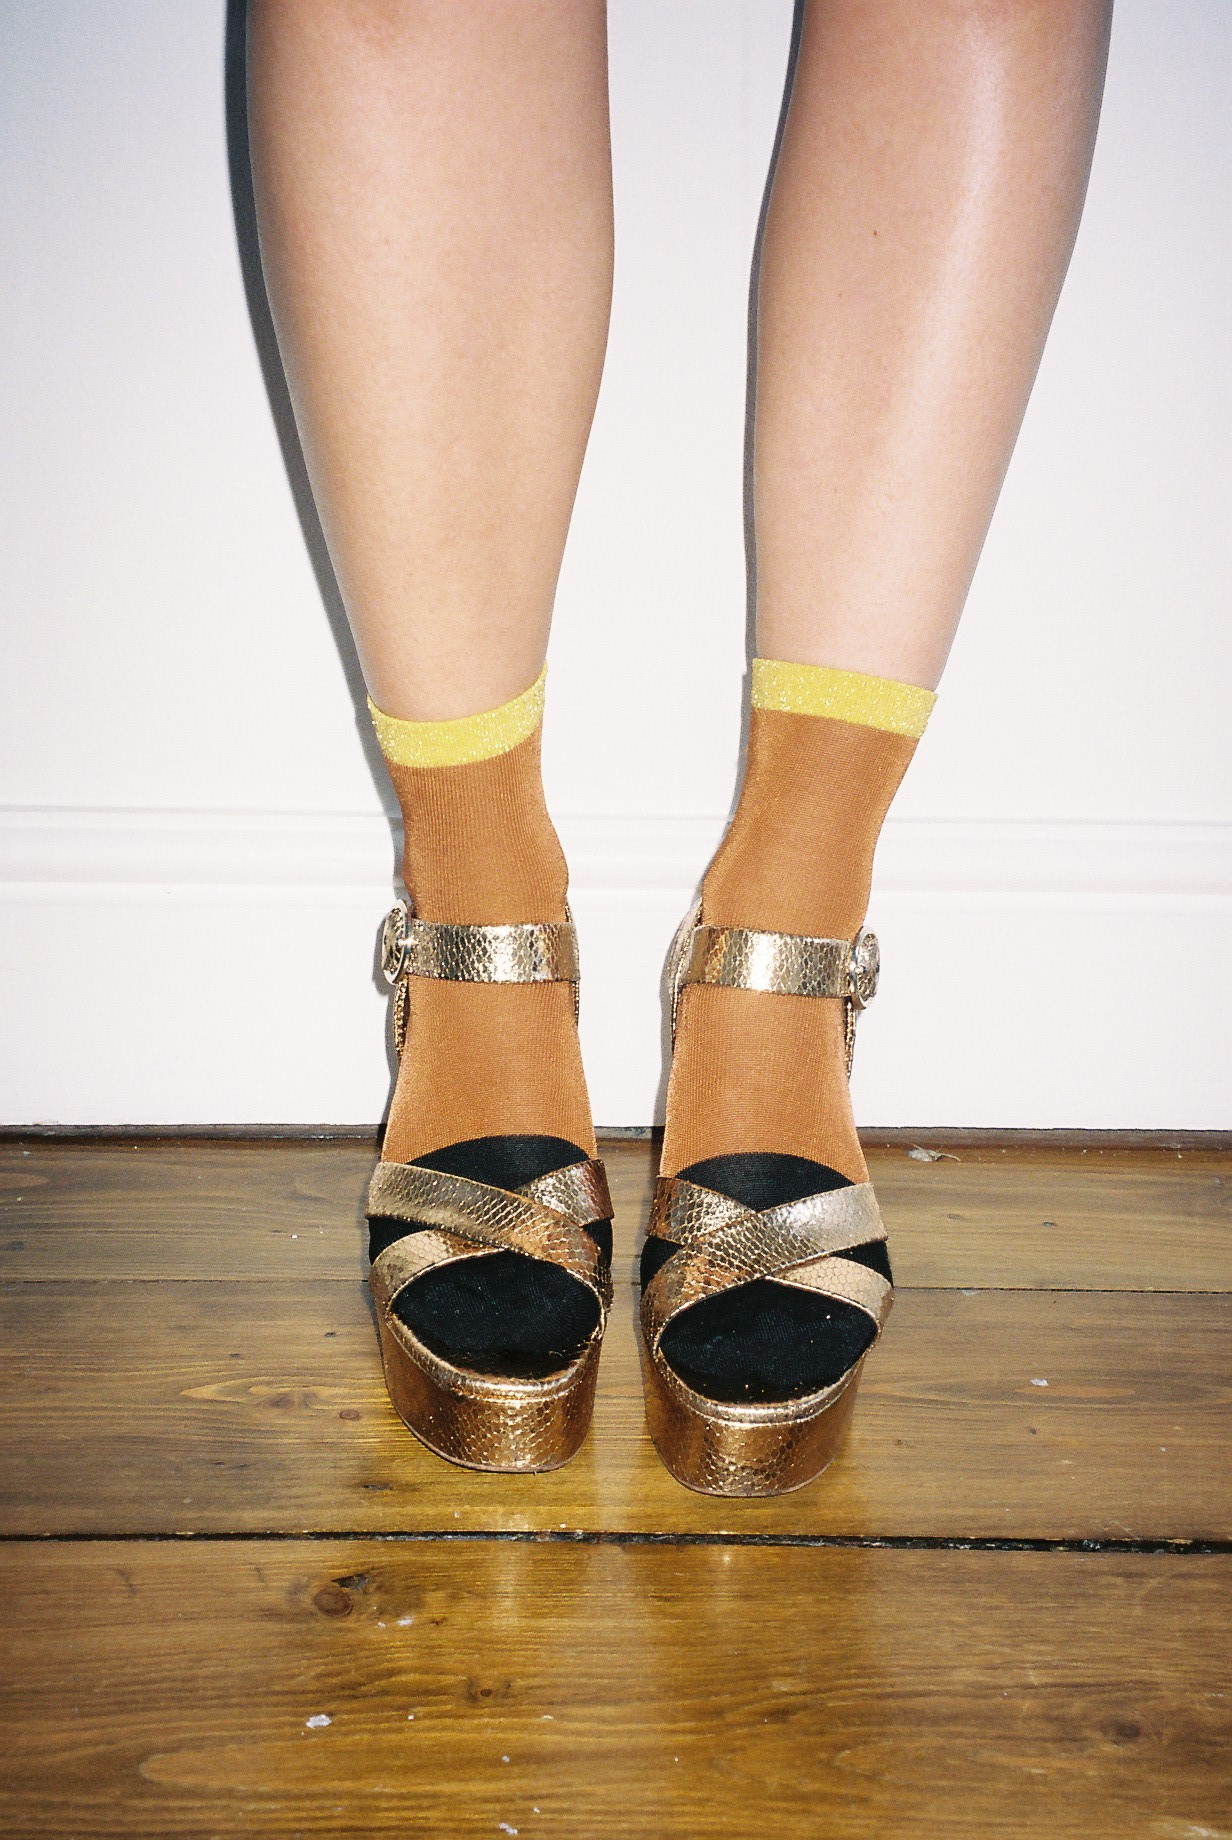 MEGAN ELLABY SOCKS AND SANDALS